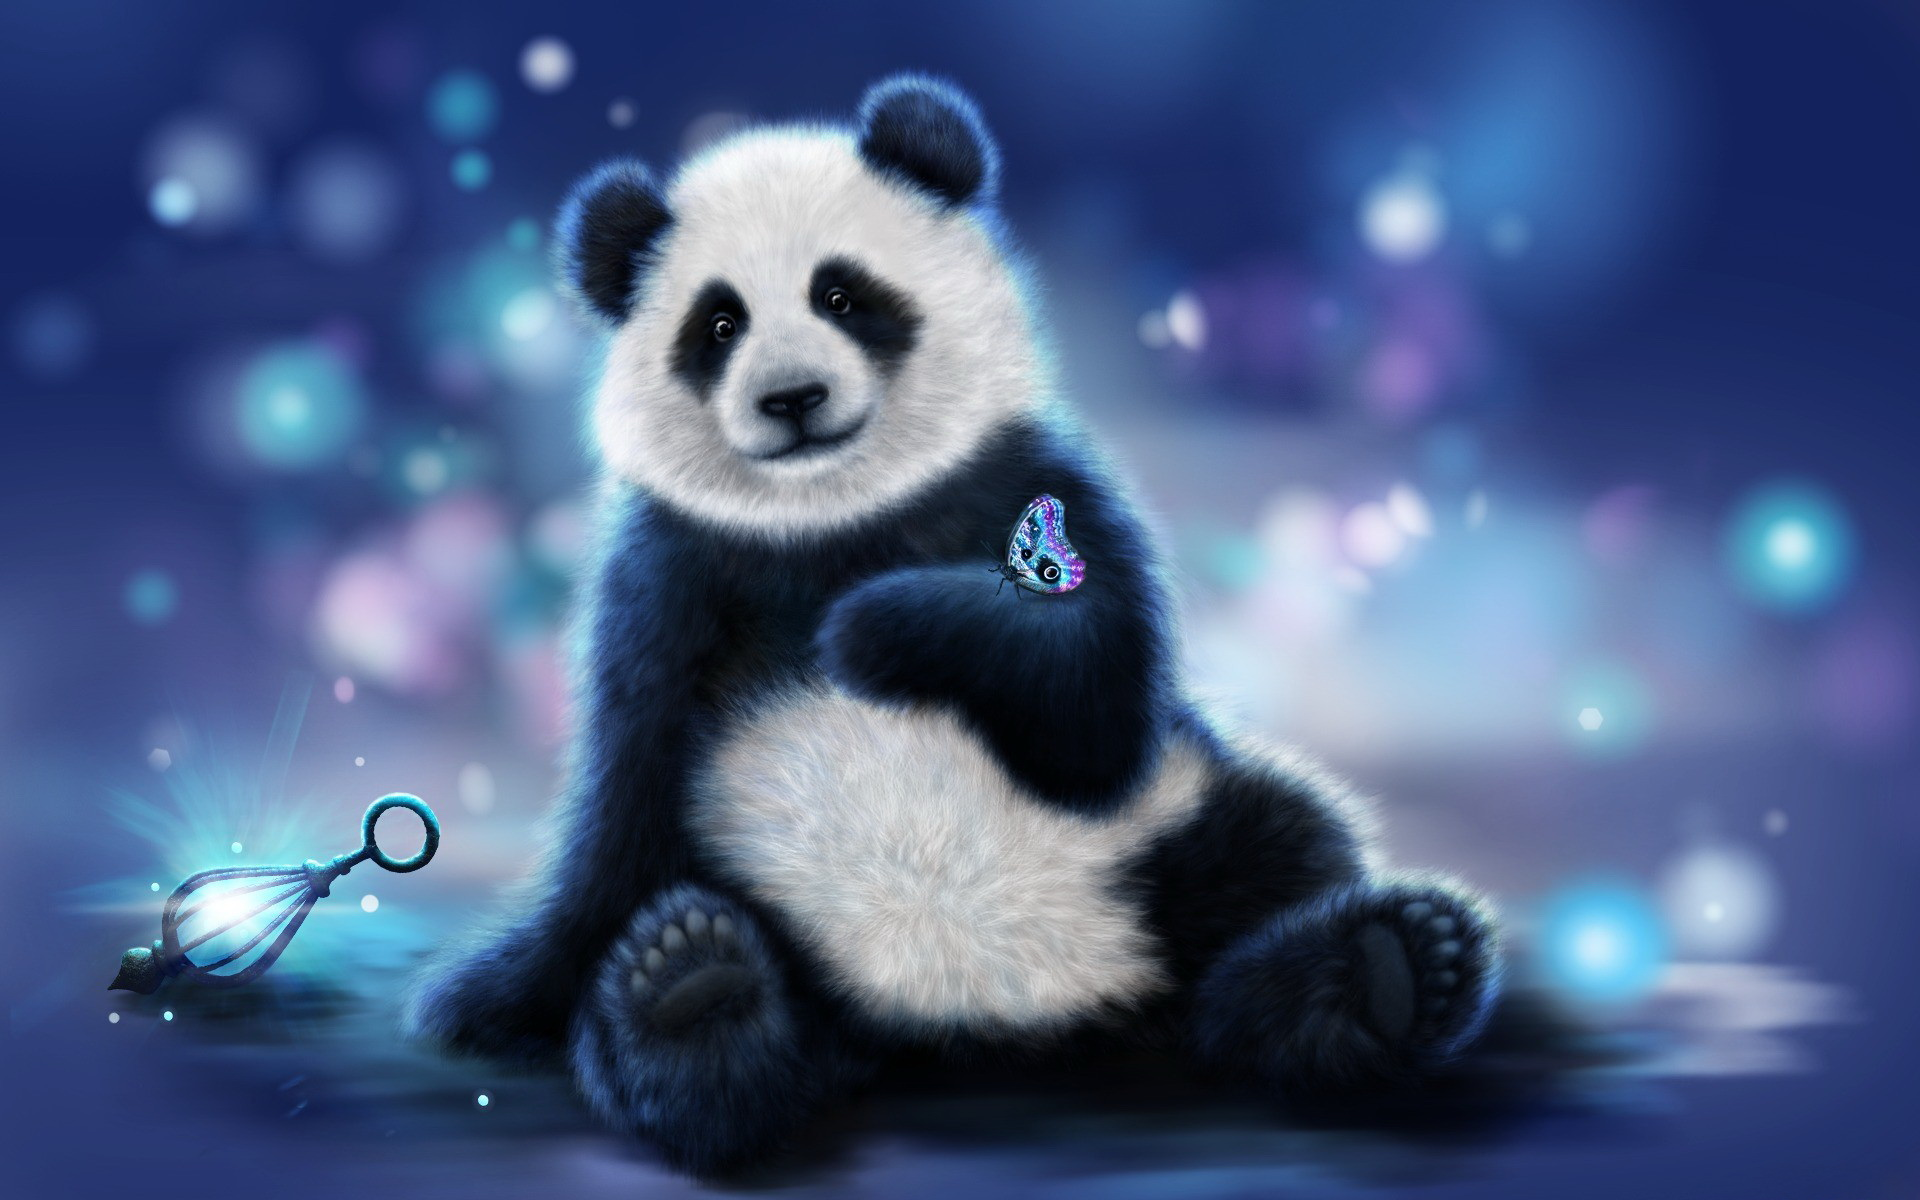 Butterfly on Cute Panda Hand Animated Wallpaper wallpaper 1920x1200